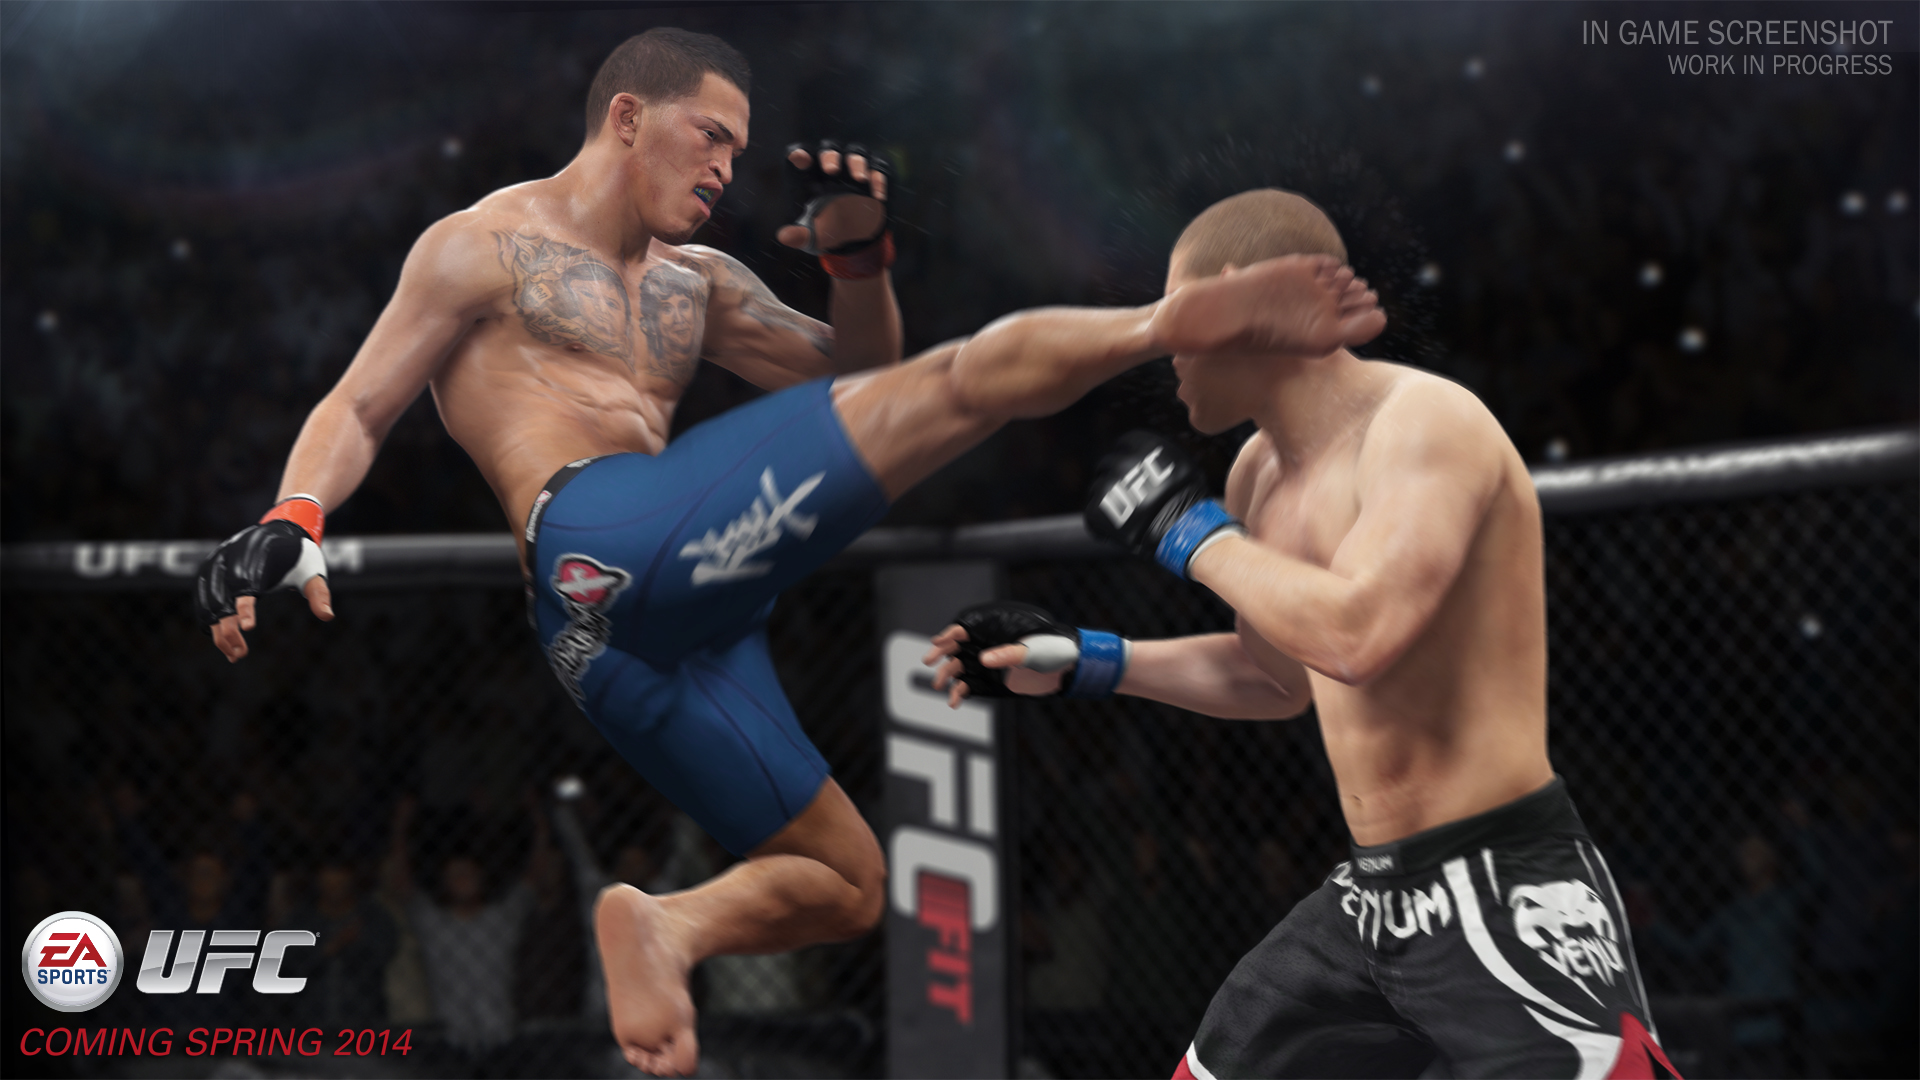 EA Sports UFC is promising, but there's 'a good chunk of work left'